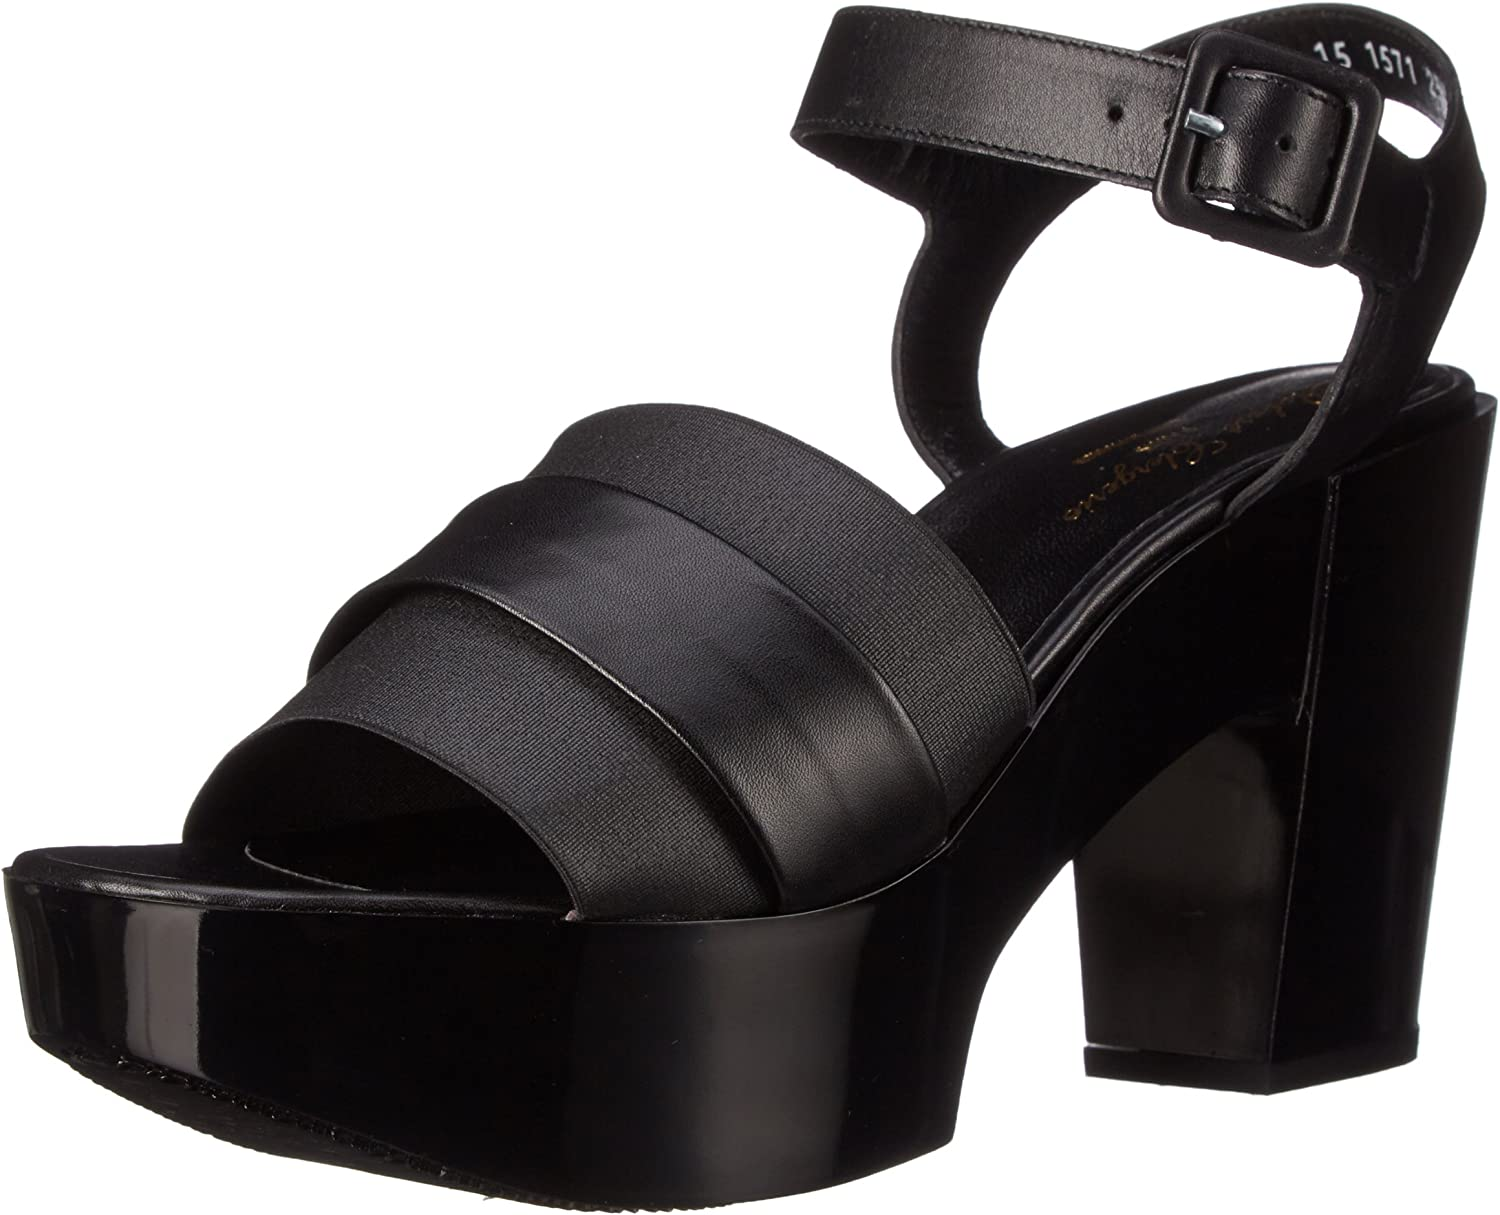 Robert Clergerie Women's Culturek Platform Dress Sandal